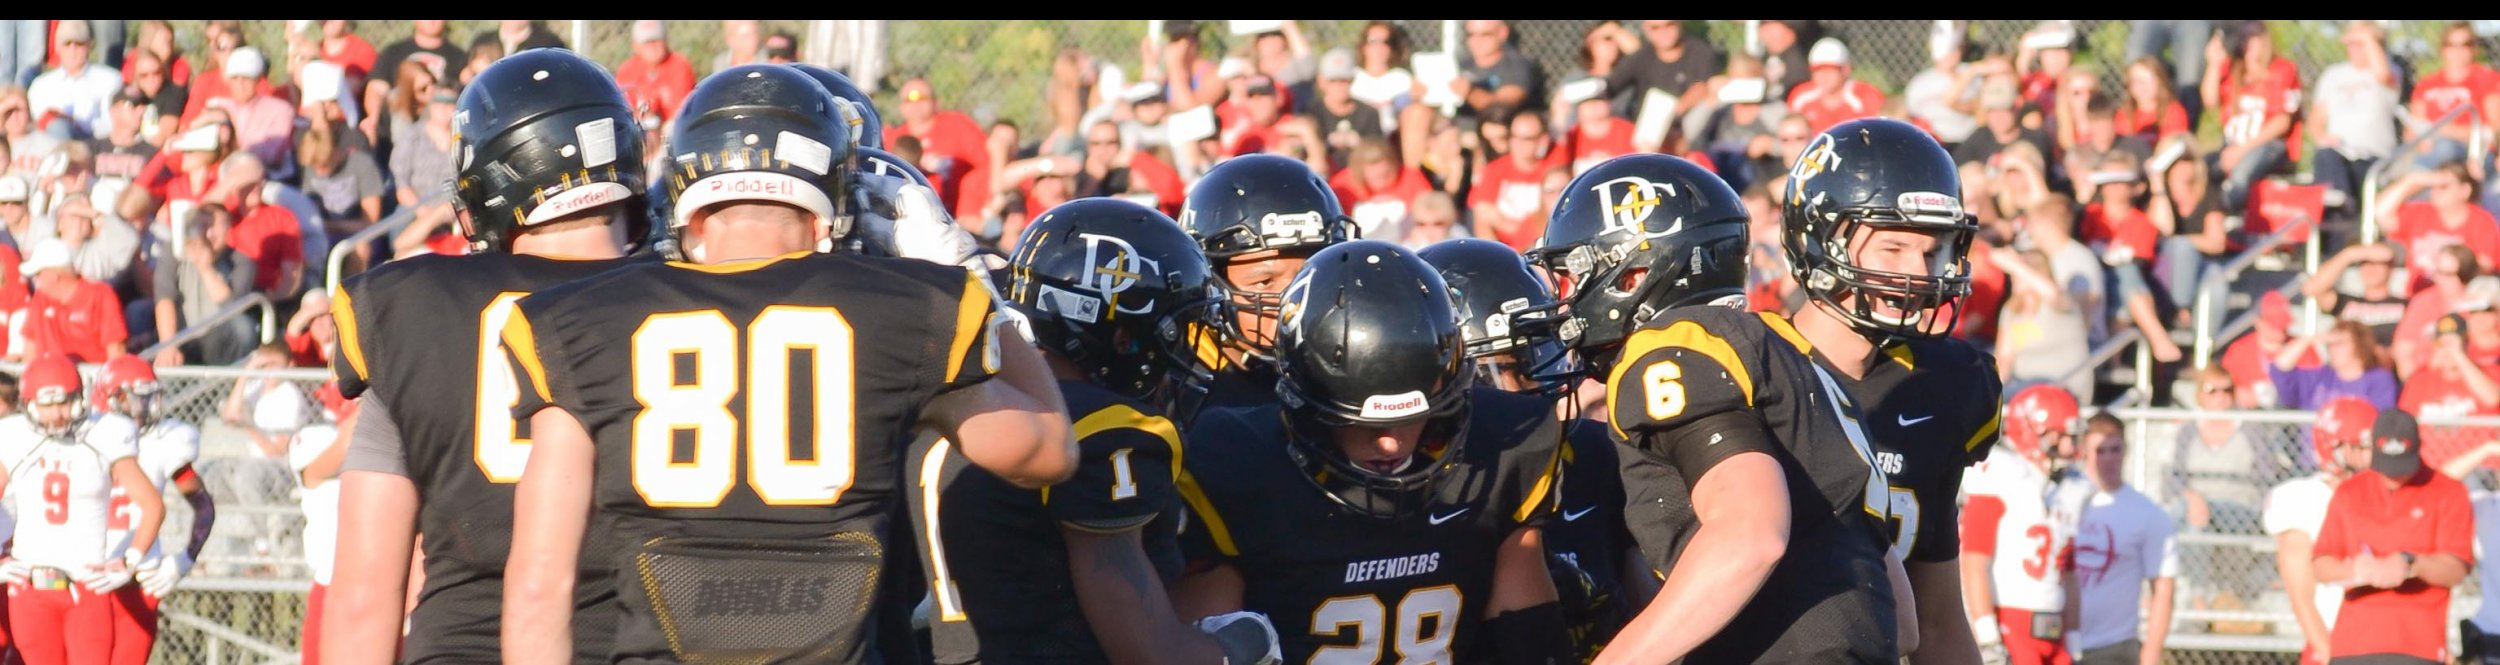 Dordt football players help one of their teammates.